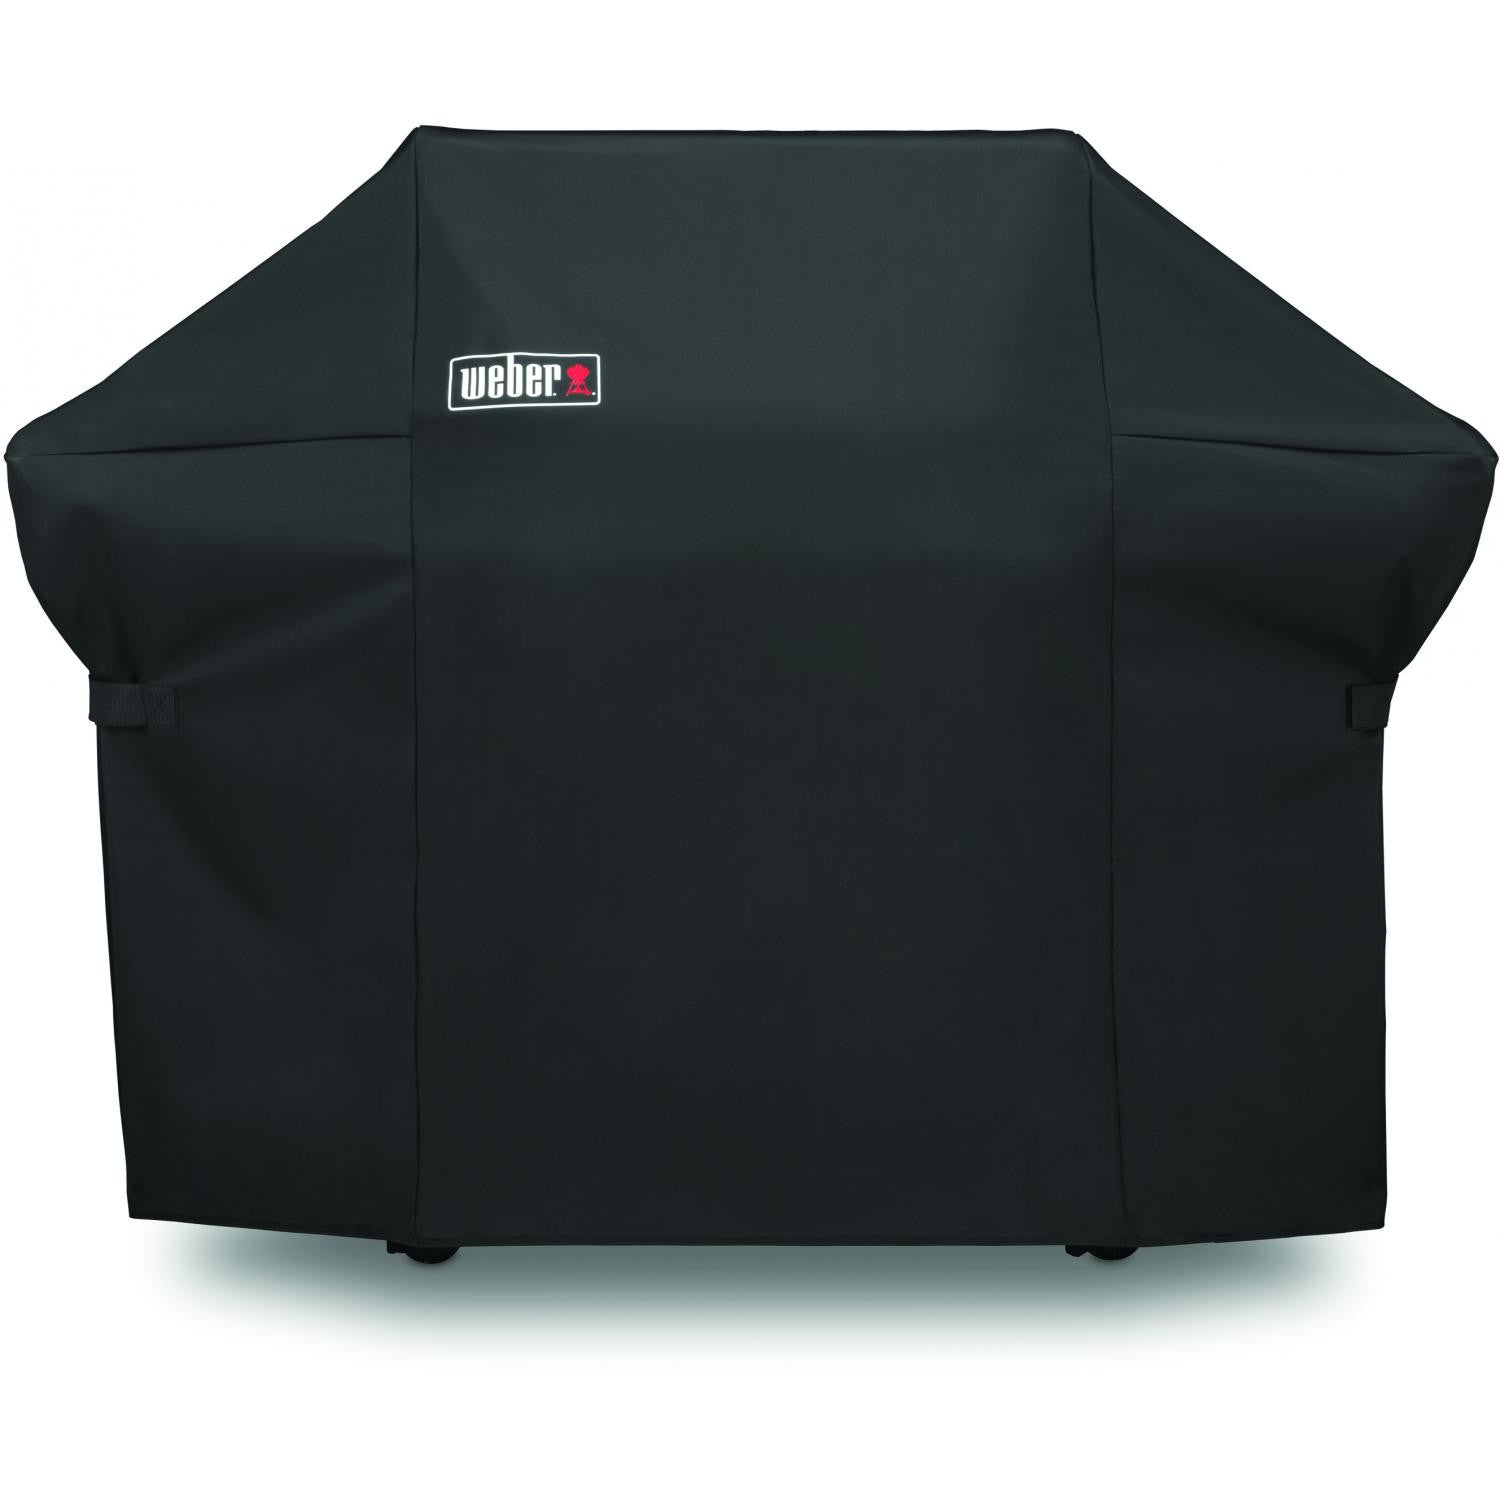 Weber 7108 Premium Grill Cover For Summit E-400 Or S-400 Series Gas Grills